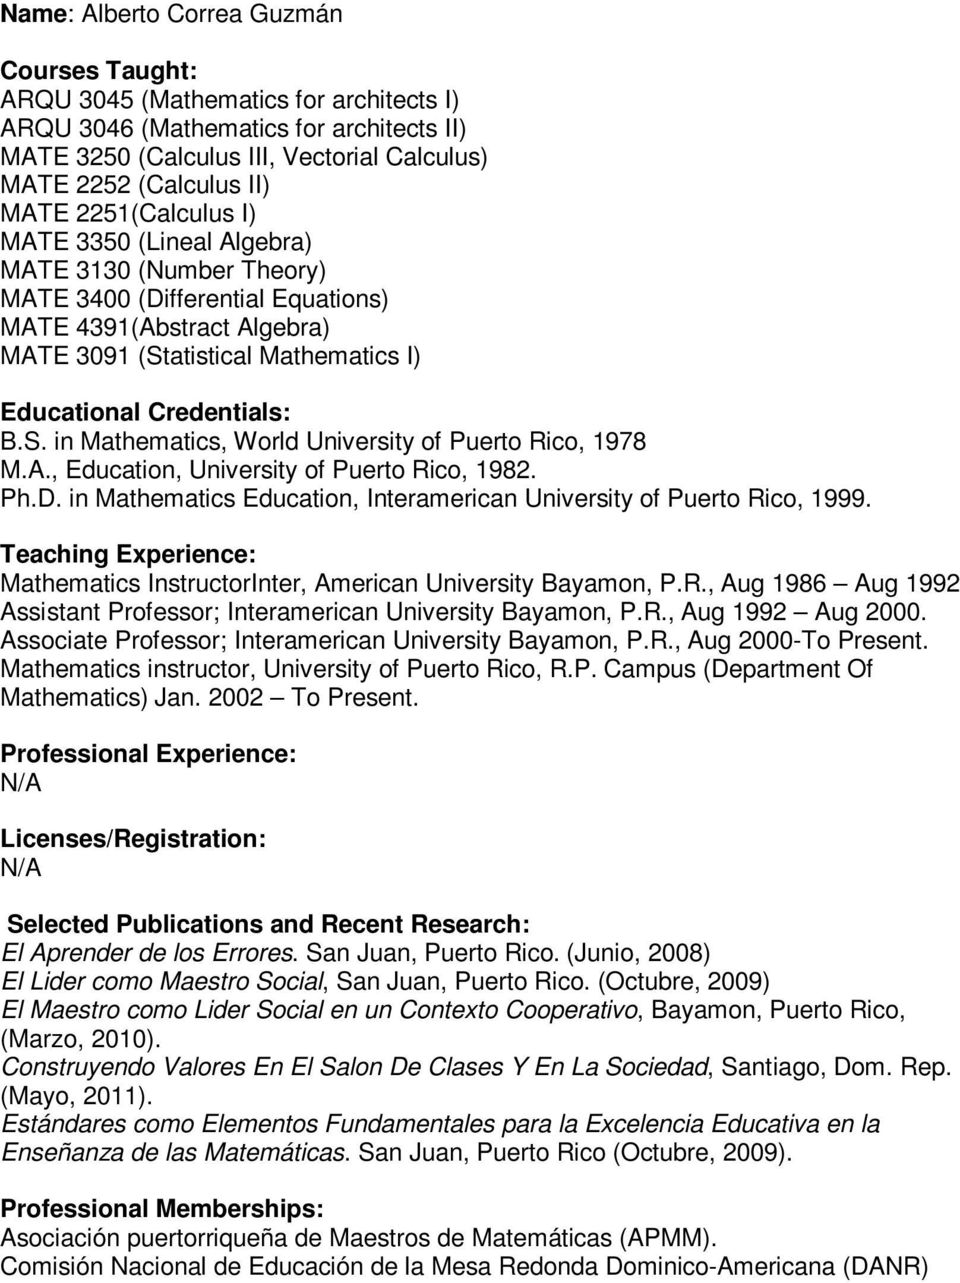 A., Education, University of Puerto Rico, 1982. Ph.D. in Mathematics Education, Interamerican University of Puerto Rico, 1999. Mathematics InstructorInter, American University Bayamon, P.R., Aug 1986 Aug 1992 Assistant Professor; Interamerican University Bayamon, P.